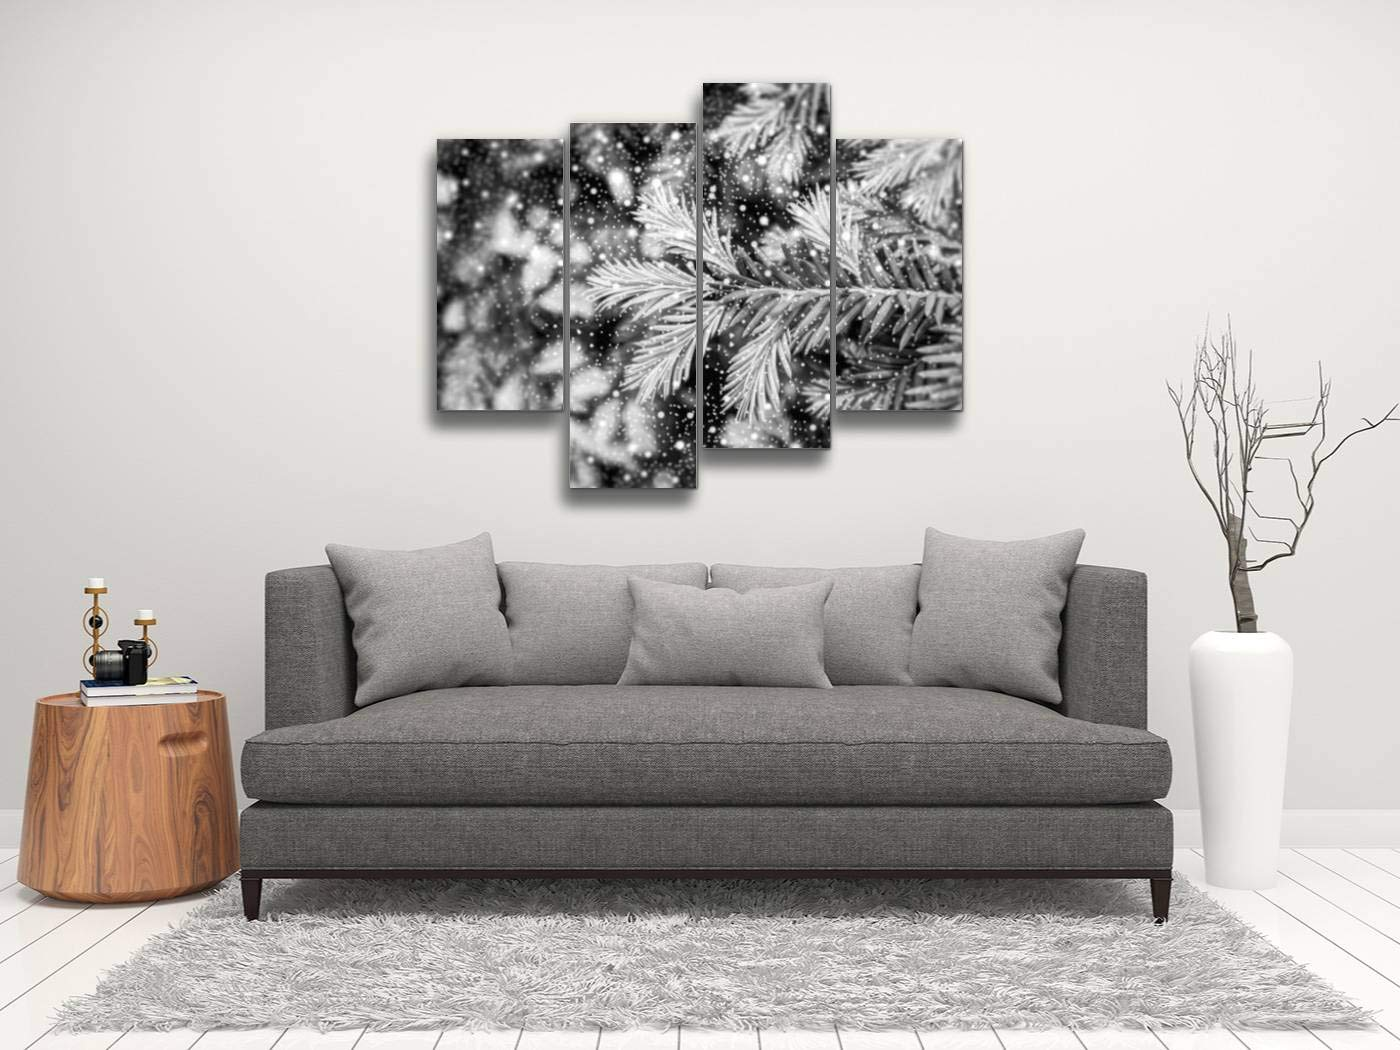 Young Shoots of Pine Tree Macro with Shiny Snowfall HDR Effect Black Canvas Wall Art Hanging Paintings Modern Artwork Abstract Picture Prints Home Decoration Gift Unique Designed Framed 4 Panel